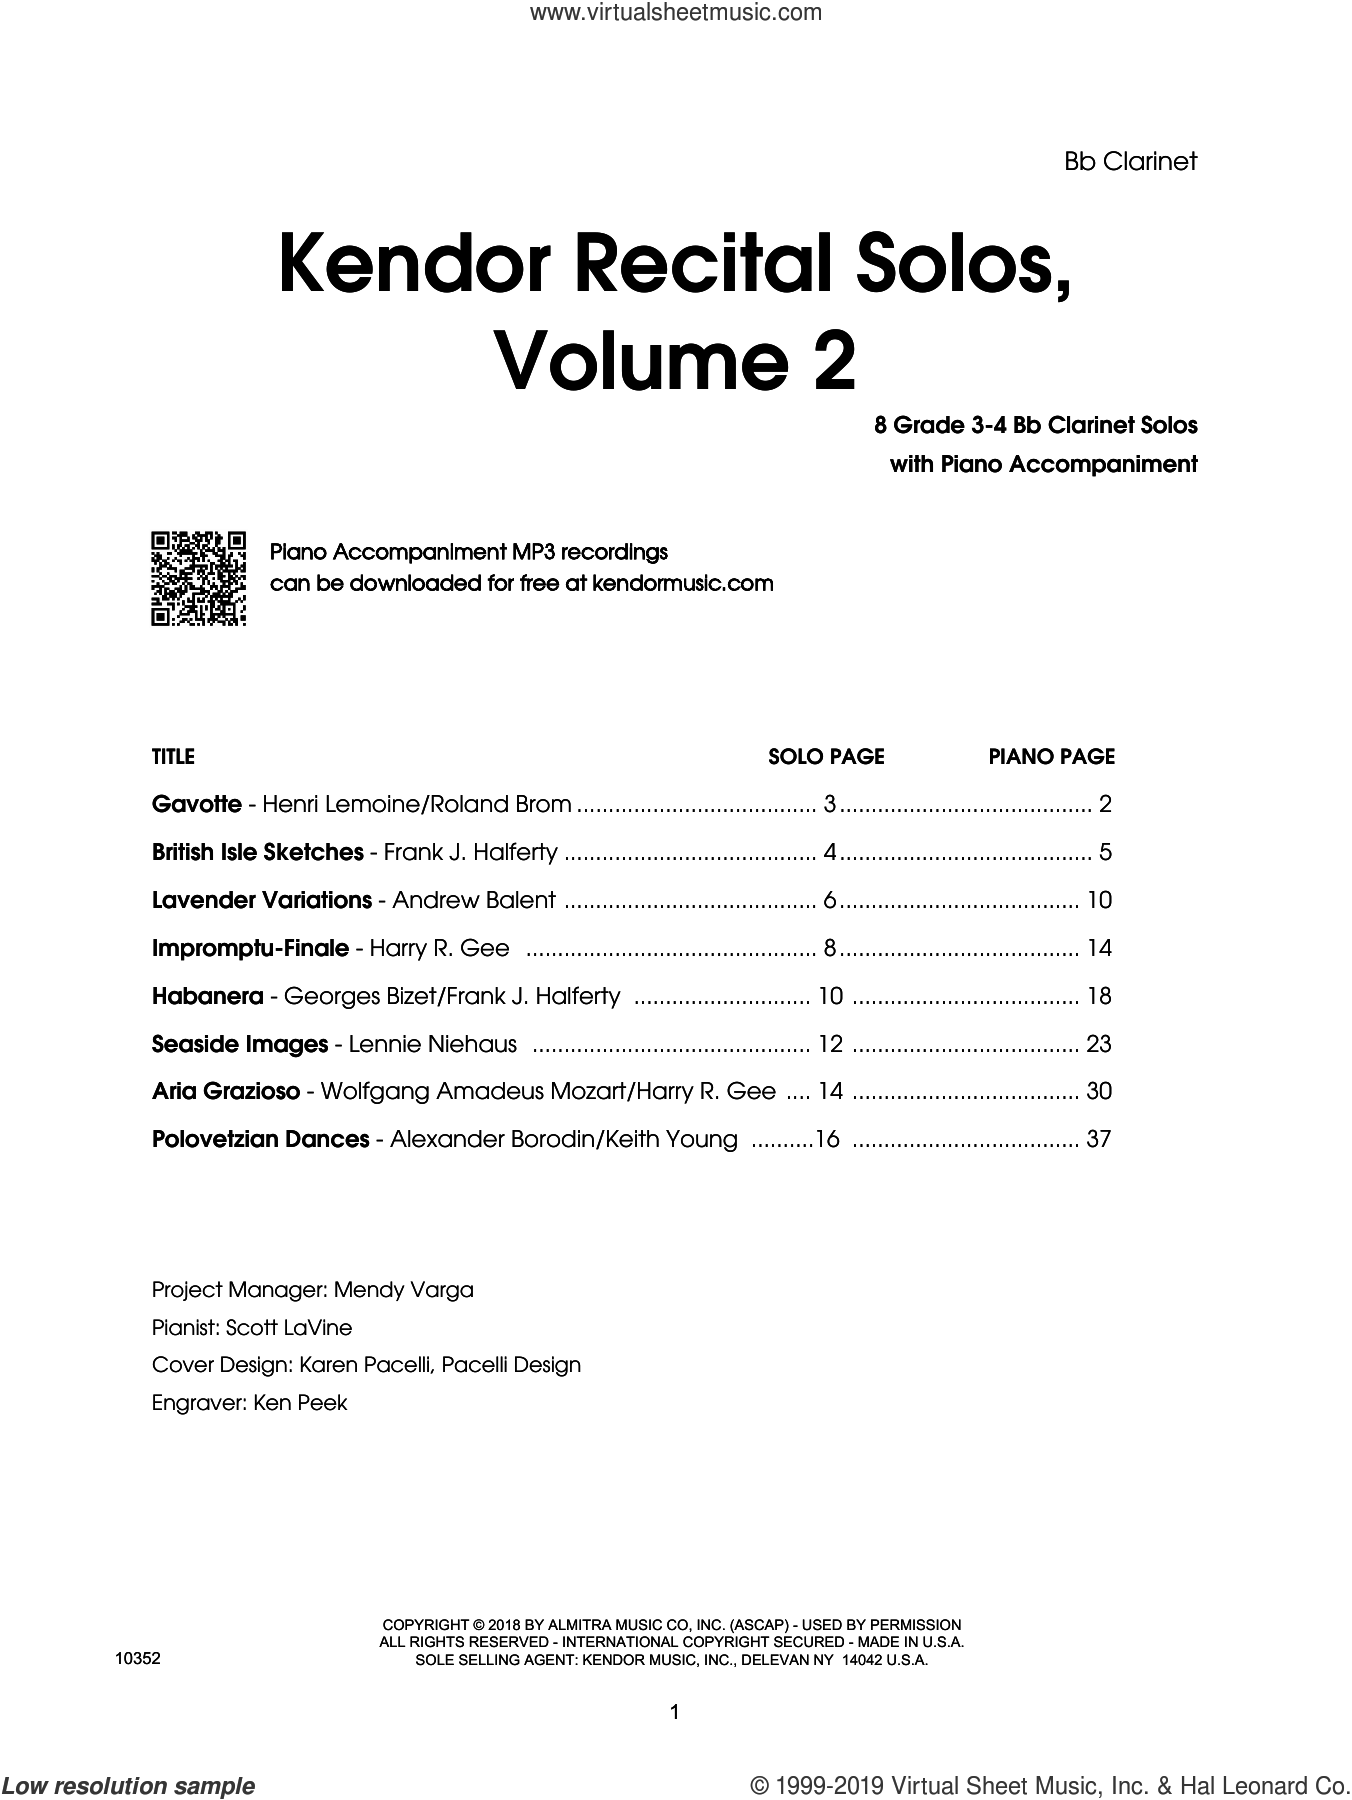 Kendor Recital Solos, Volume 2 - Bb Clarinet With Piano Accompaniment and MP3s (complete set of parts) sheet music for clarinet and piano, intermediate skill level